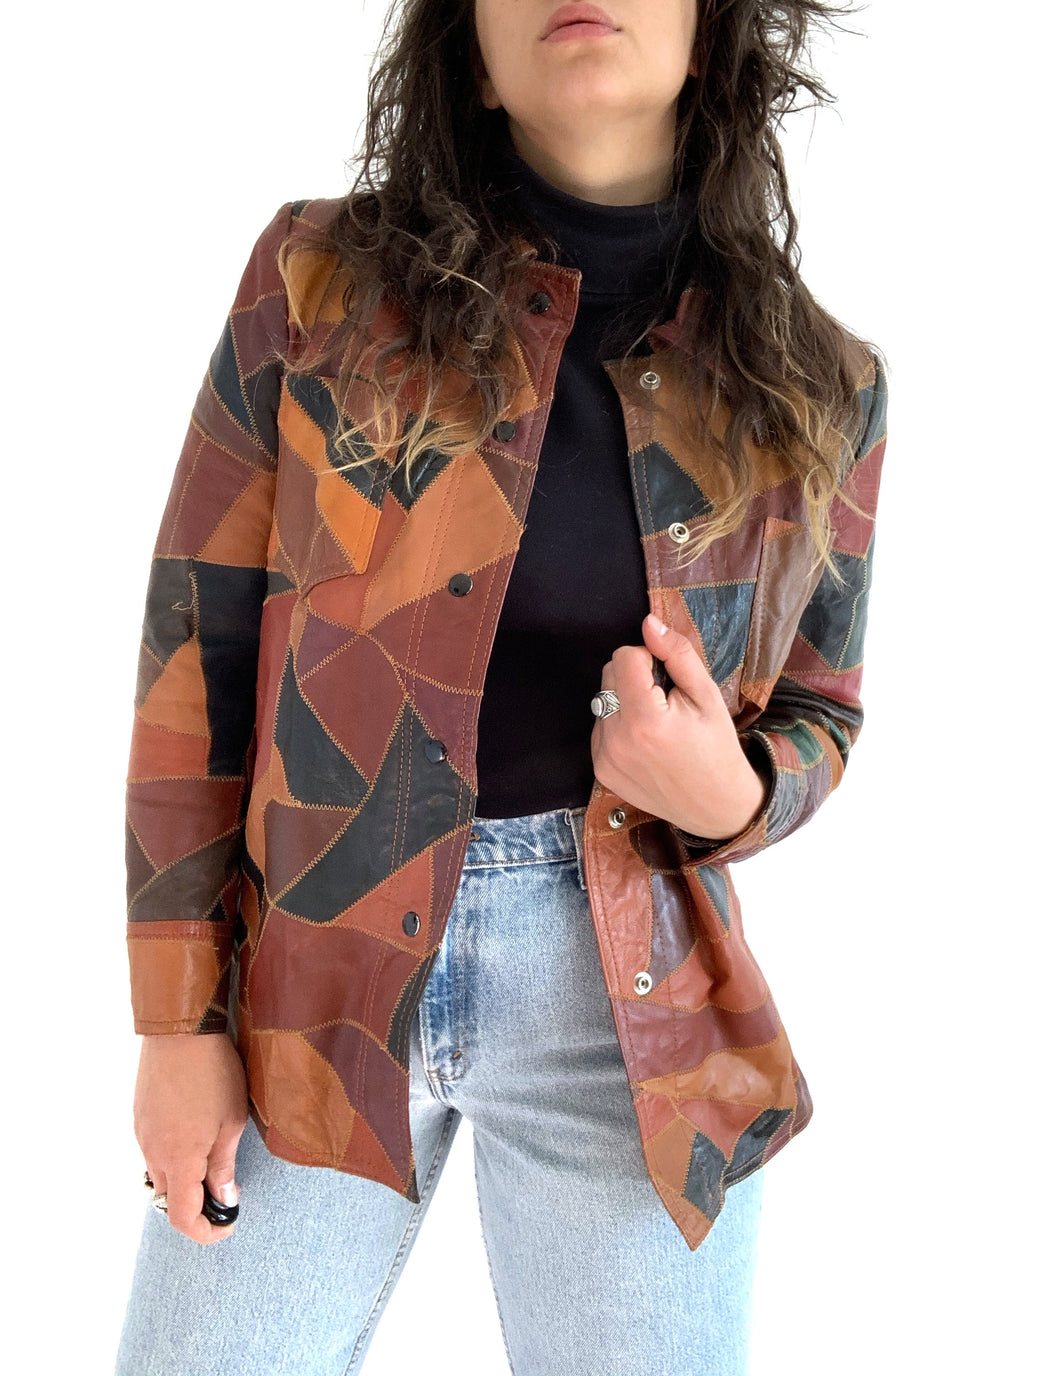 Vintage 1970s Montgomery Ward Leather Patchwork Jacket